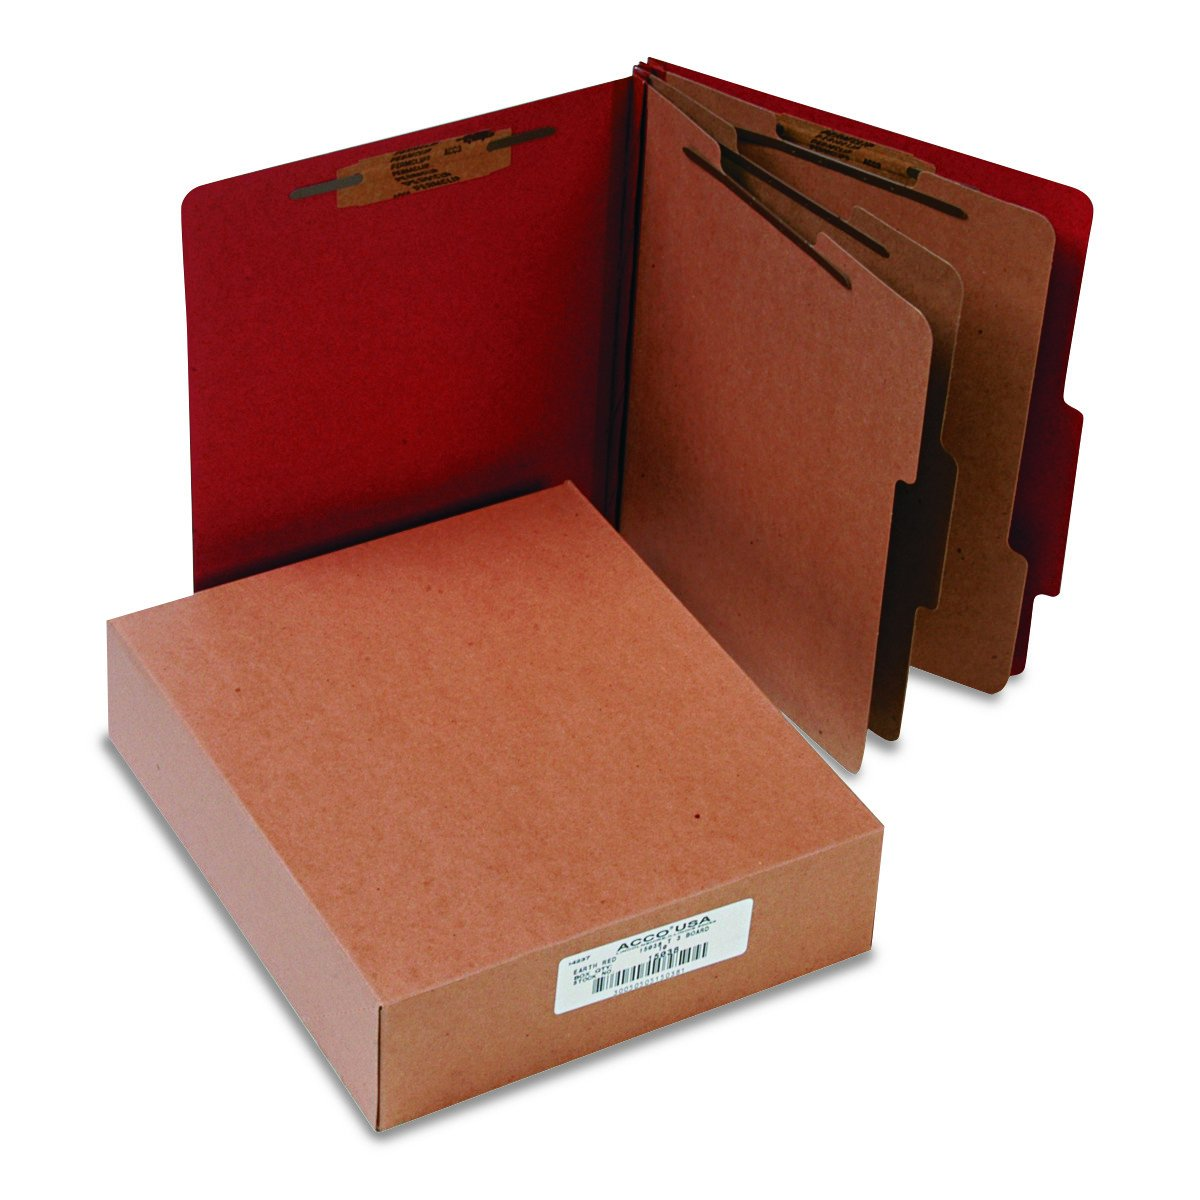 ACCO 15038 ACCO Pressboard 20-Point Classification Folder, LTR, 6-Section, Earth Red, 10/Bx by ACCO